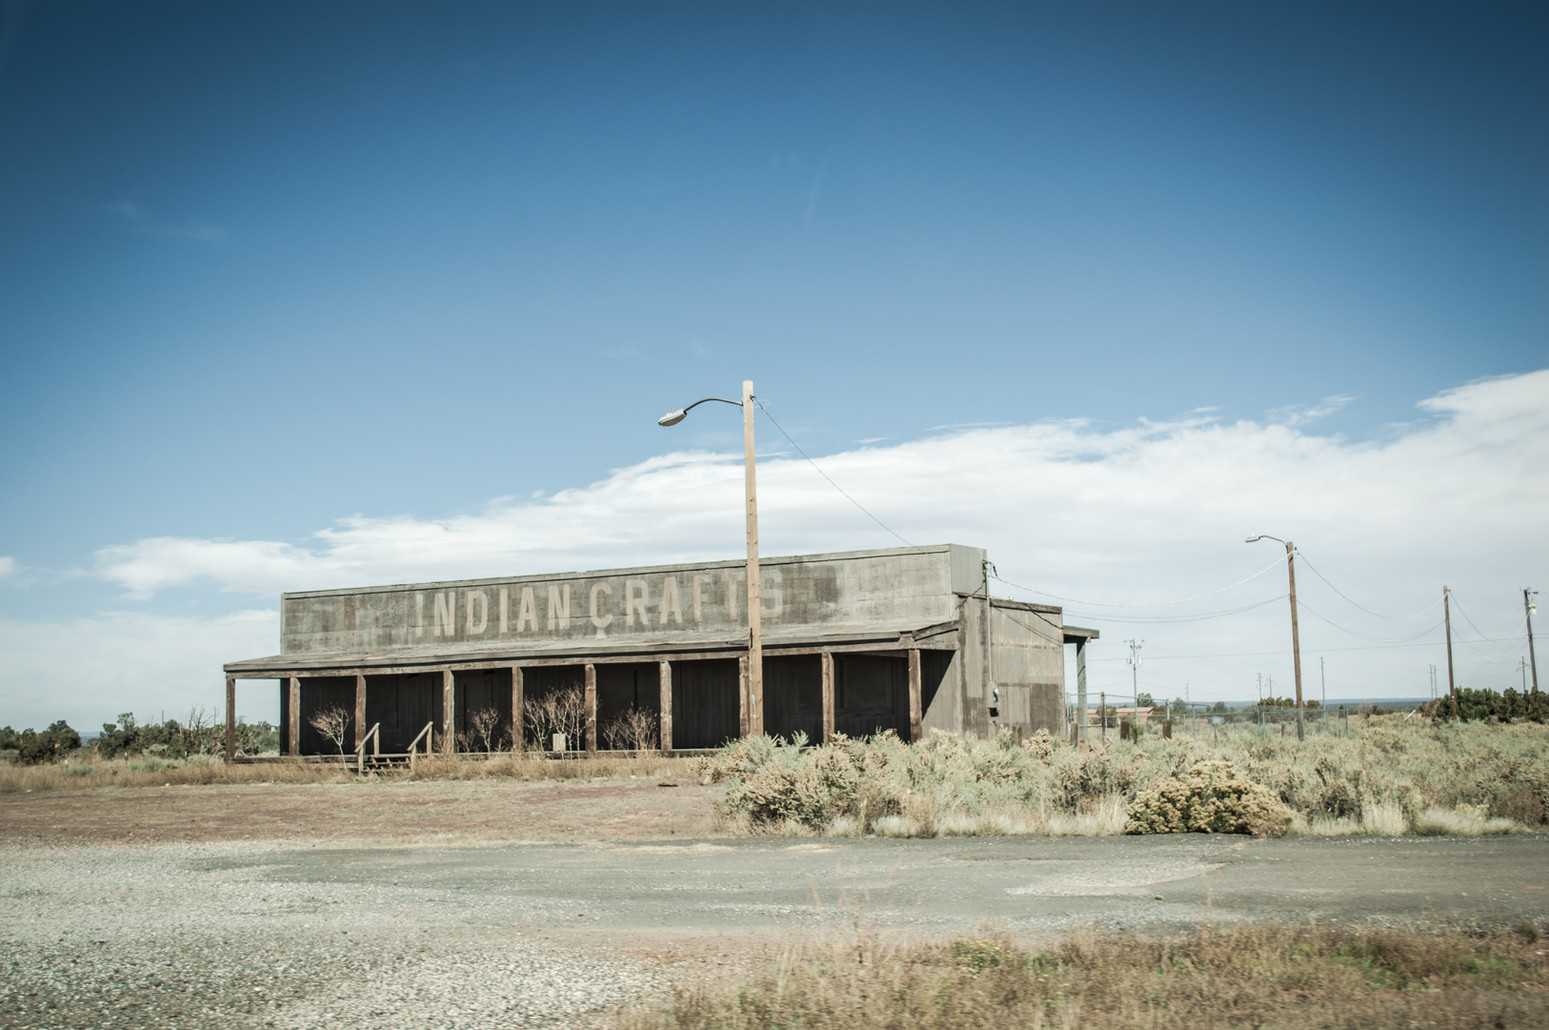 An abandoned 'Indian' crafts store in Arizona.